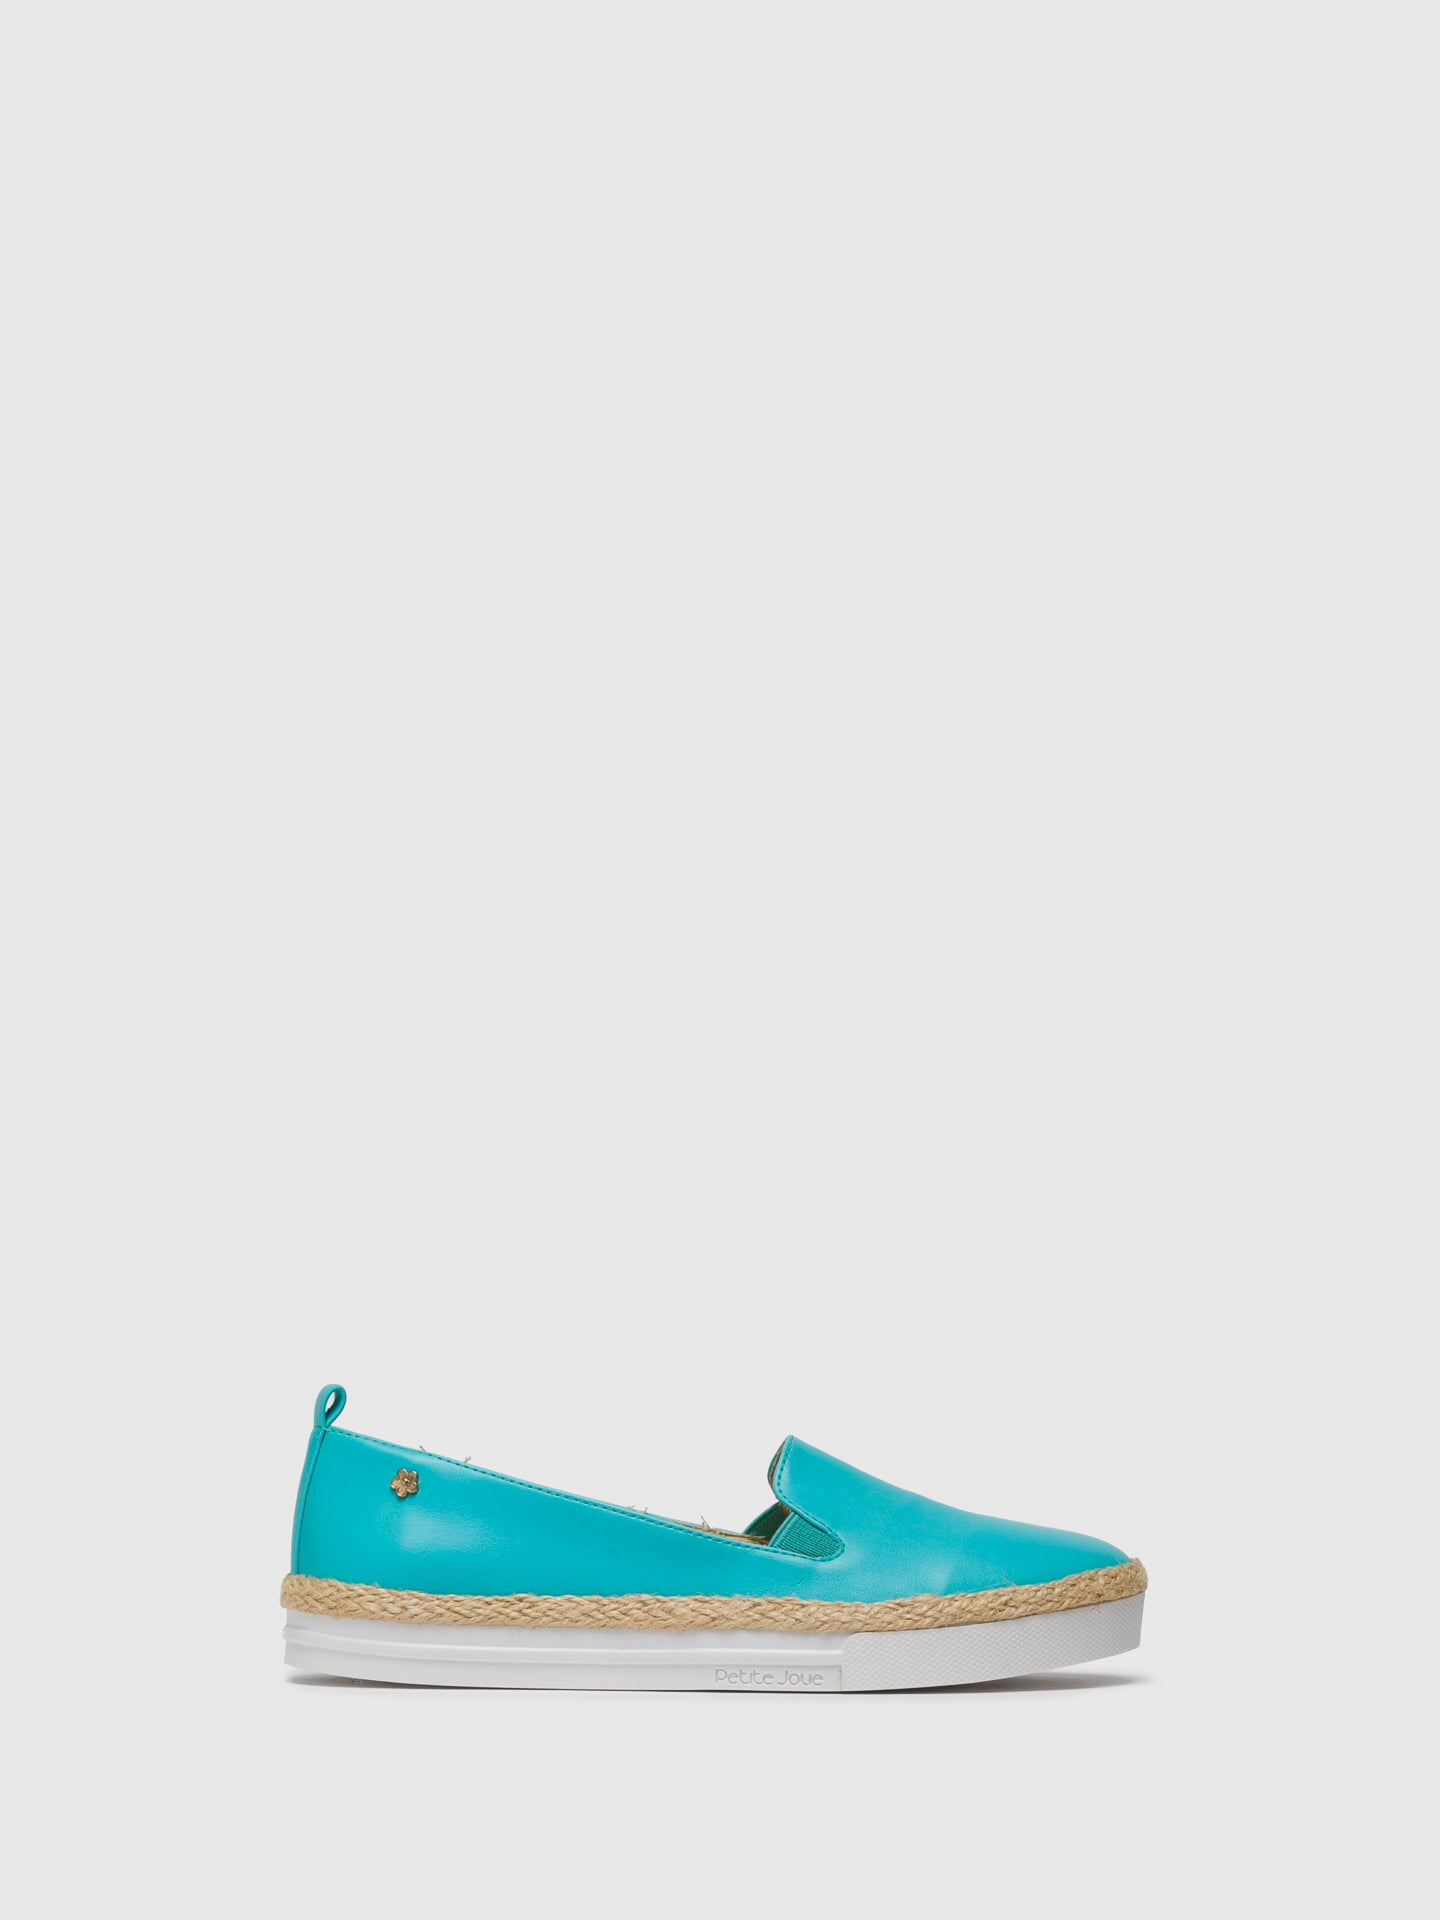 PETITE JOLIE by PARODI Turquoise Slip-on Trainers